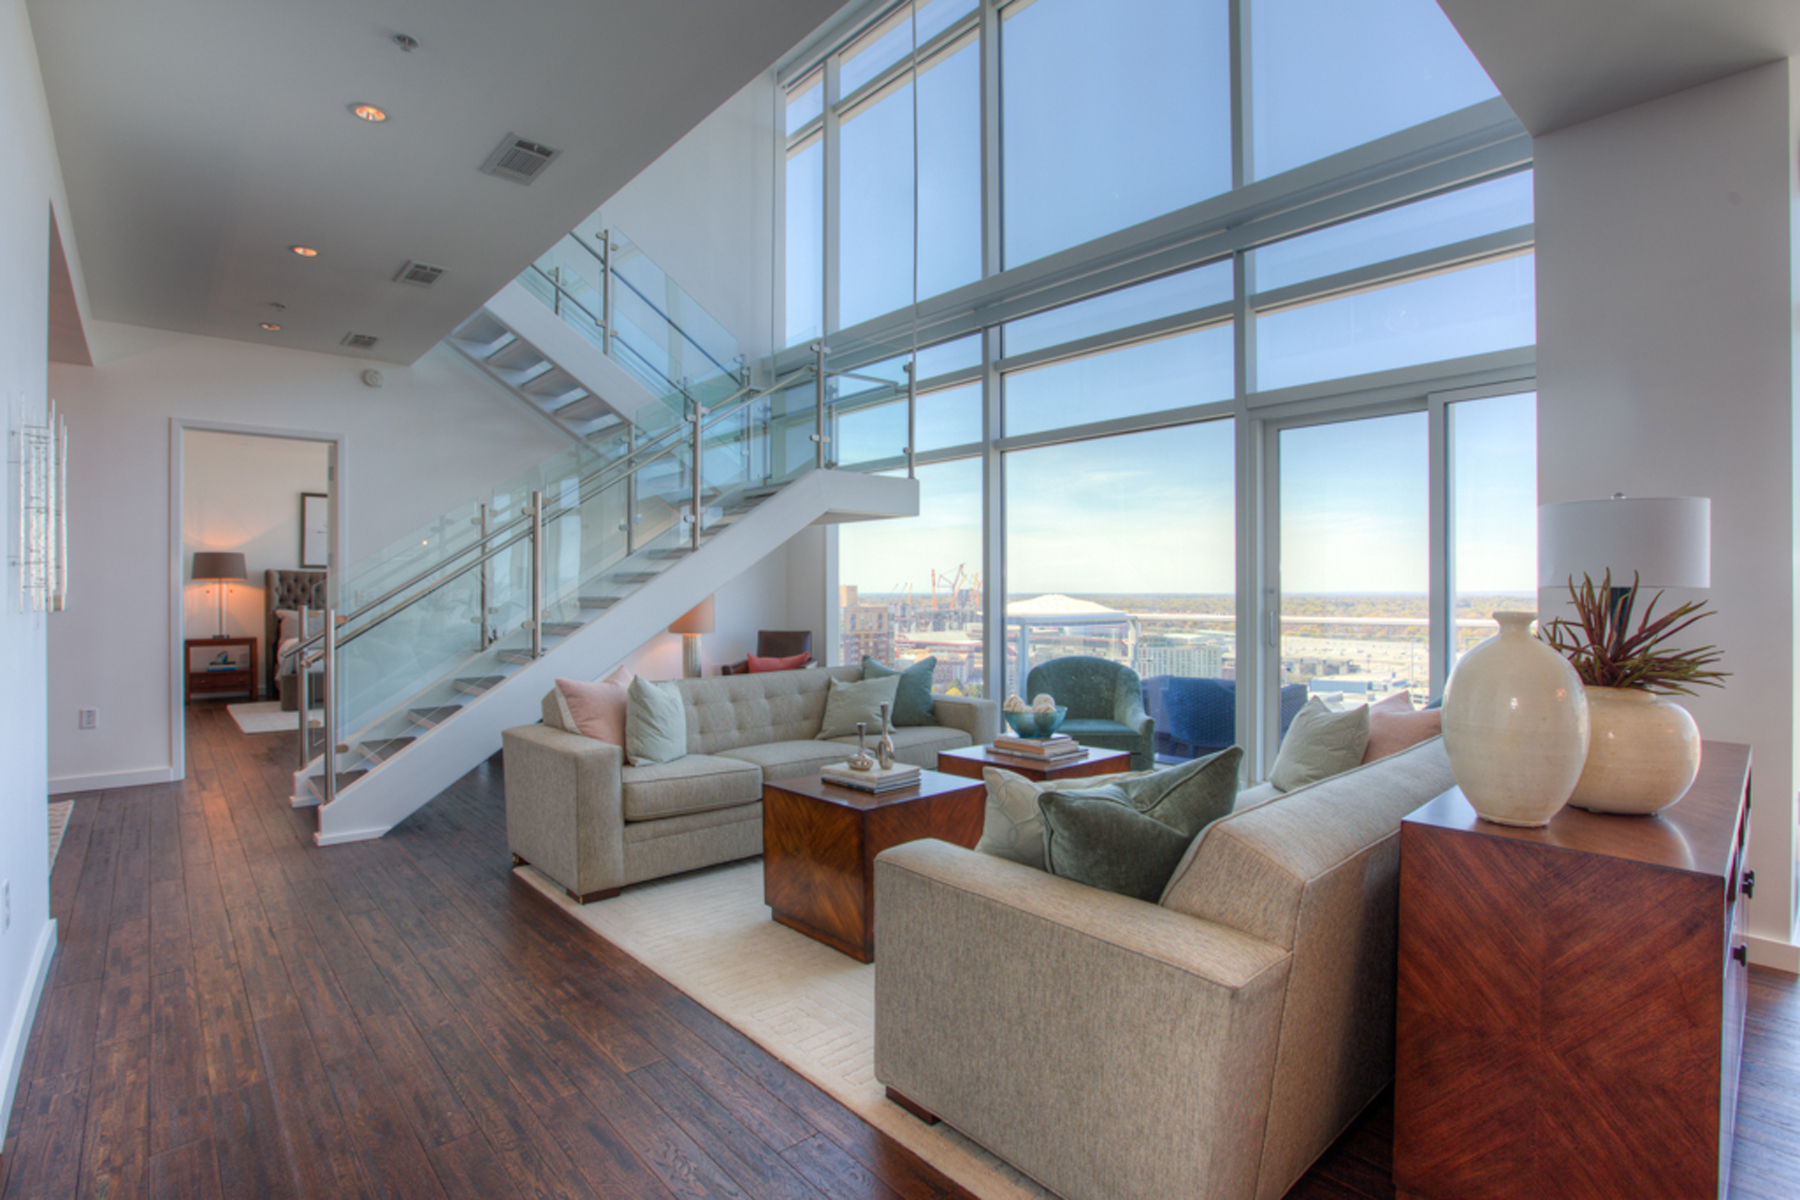 Additional photo for property listing at Spectacular Two Level Atlanta Penthouse With Luxury Hotel Amenities 45 Ivan Allen Jr Boulevard PH#2703 Atlanta, Γεωργια 30308 Ηνωμενεσ Πολιτειεσ